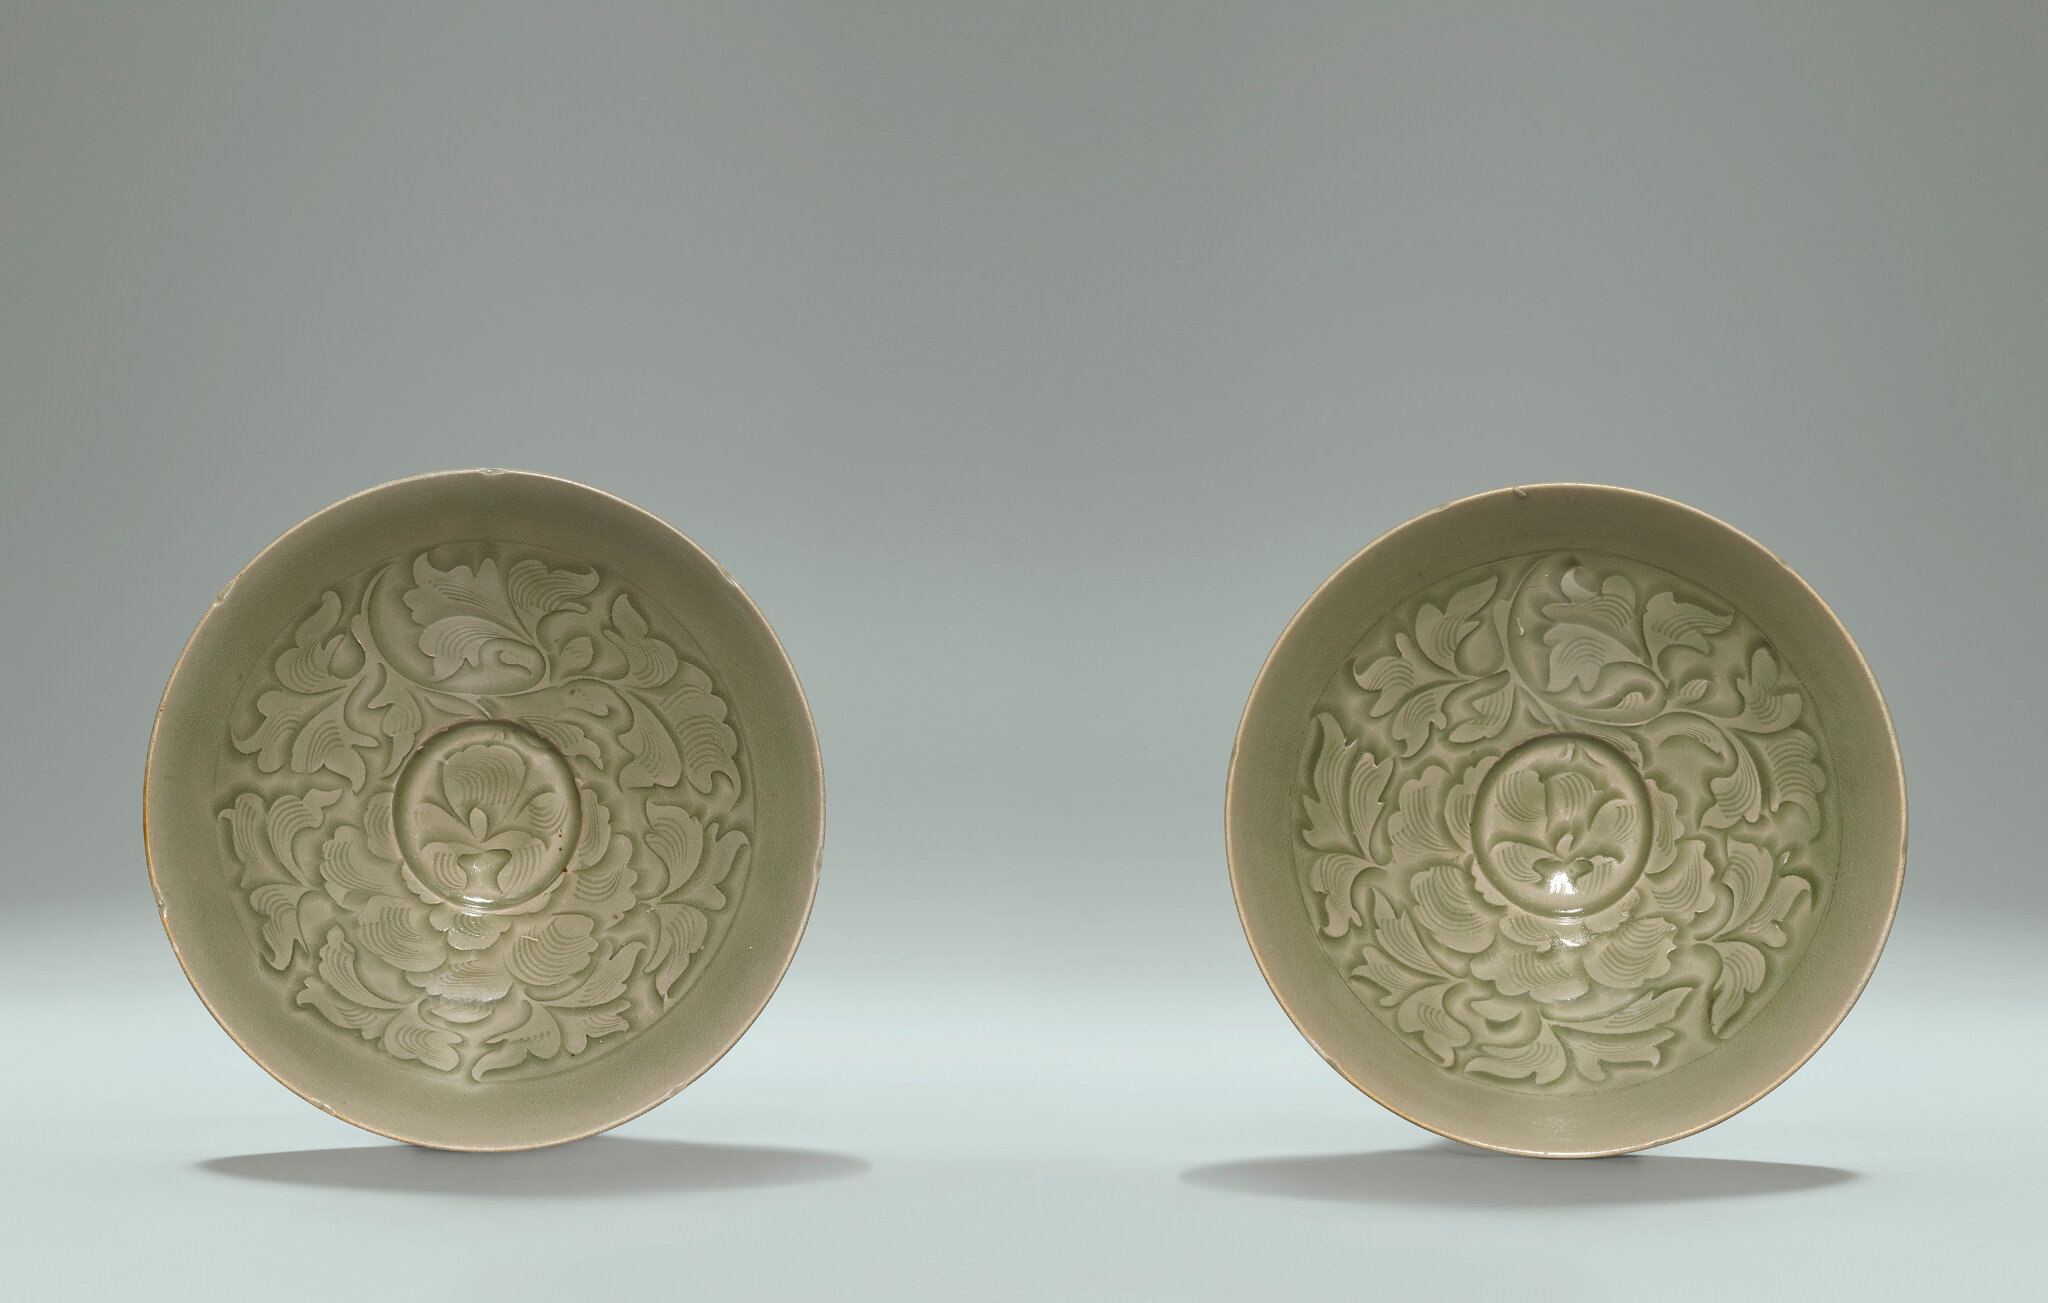 Two rare and superbly carved Yaozhou celadon shallow bowls, Northern Song Dynasty, 11th century